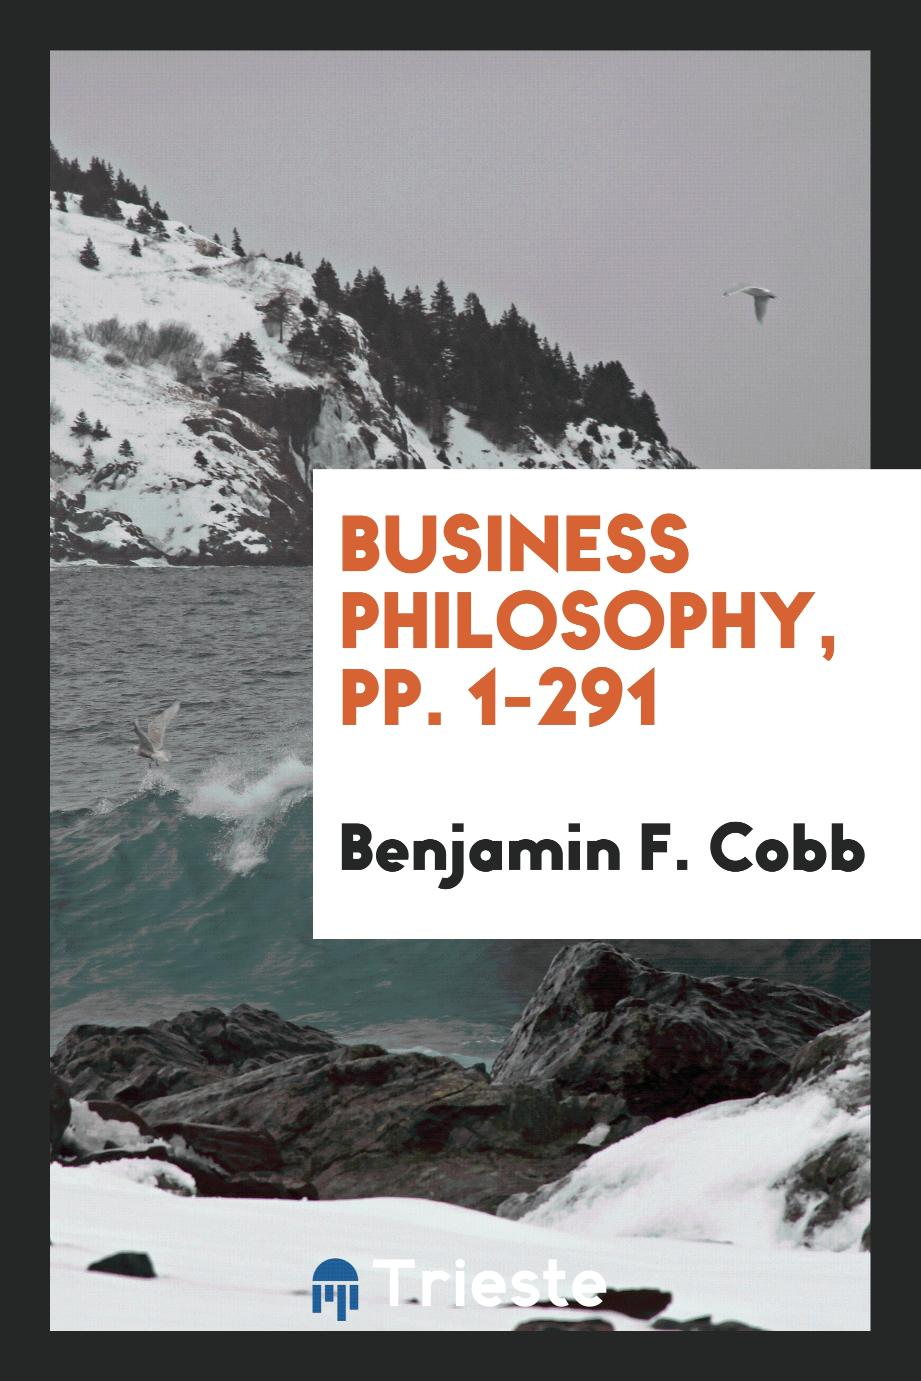 Business Philosophy, pp. 1-291